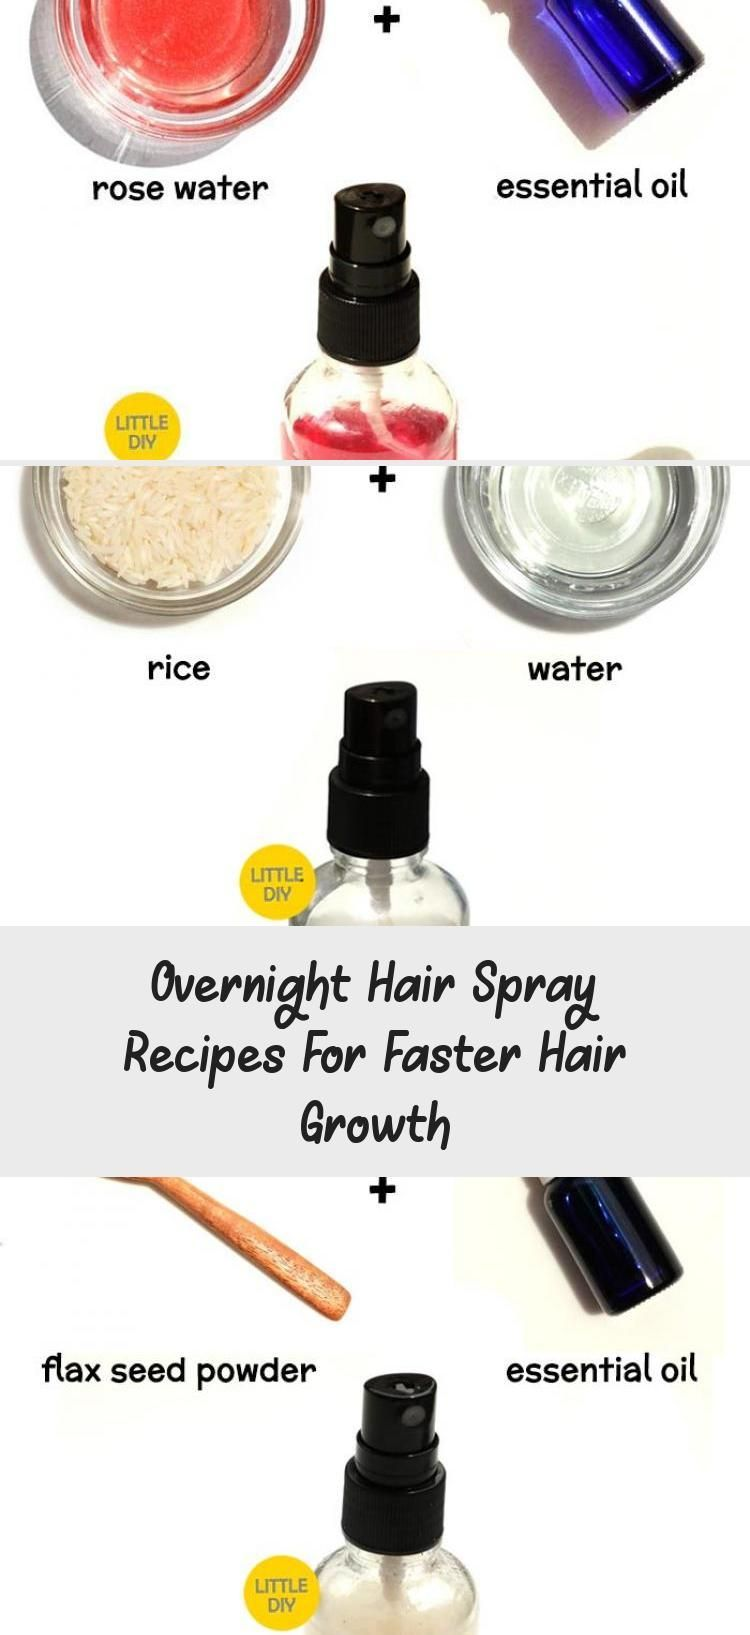 Supplement for Hair Growth} and OVERNIGHT HAIR SPRAY RECIPES for faster hair growth #Healthyhairgrowth #hairgrowthShampoo #hairgrowthDiet #Extremehairgrowth #InversionMethodhairgrowth #fasterhairgrowth OVERNIGHT HAIR SPRAY RECIPES for faster hair growth #Healthyhairgrowth #hairgrowthShampoo #hairgrowthDiet #Extremehairgrowth #InversionMethodhairgrowth